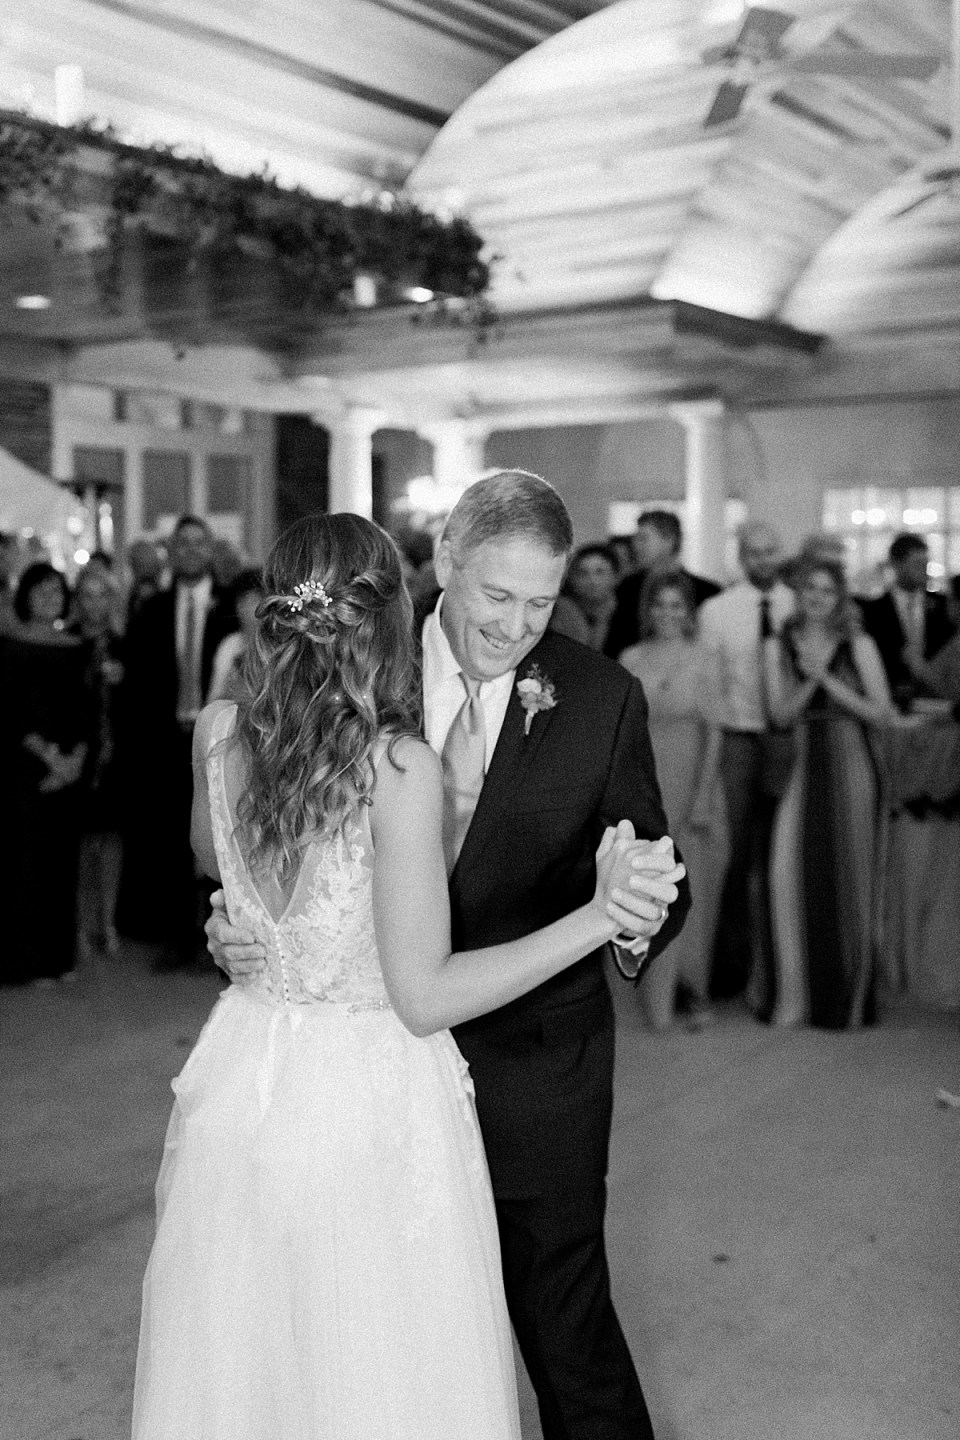 Arielle Peters Photography | Father of the bride and bride sharing a dance at wedding reception at Sycamore Hills Golf Club in Fort Wayne, Indiana on wedding day.